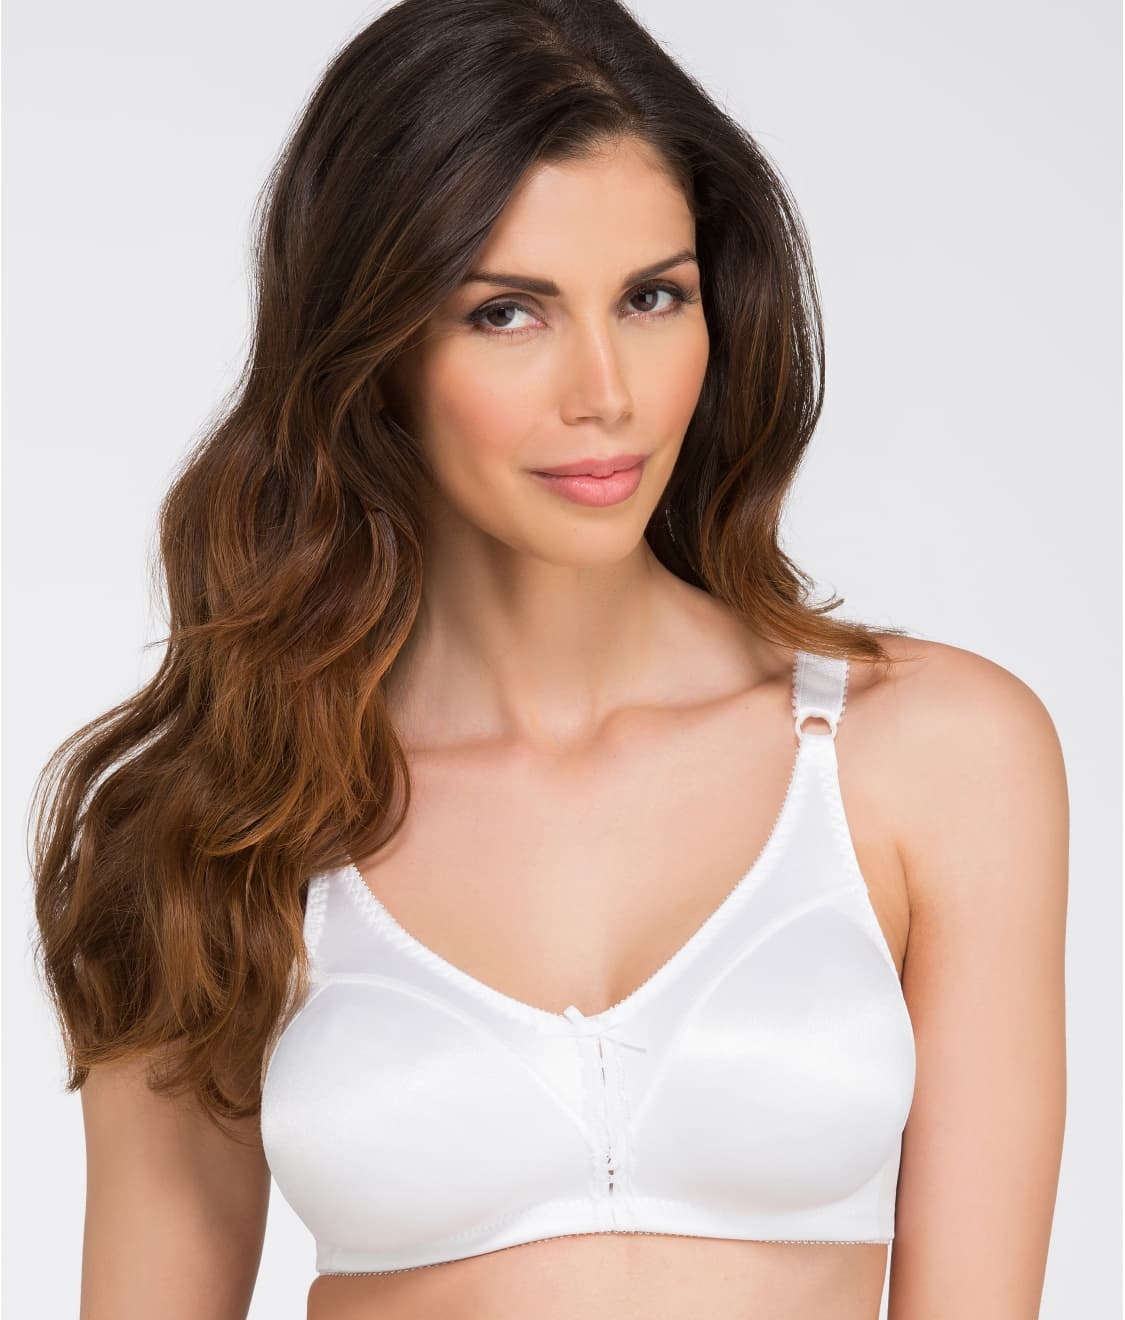 d3279efb8f See Double Support® Wire-Free Bra in White